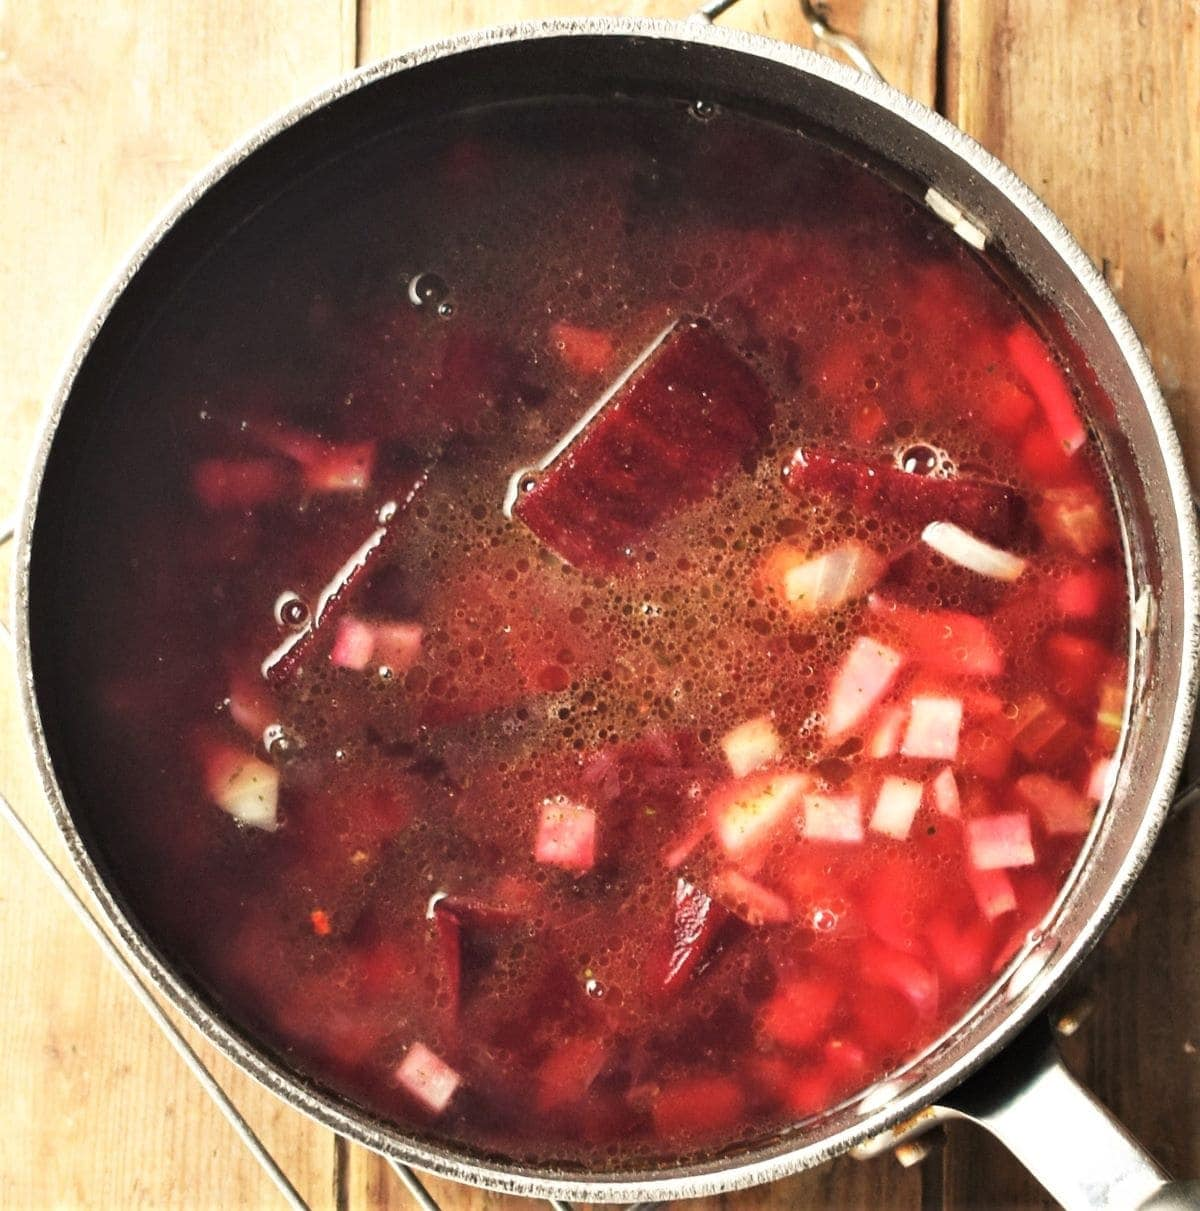 Making vegan borscht in pot with beetroot pieces visible.